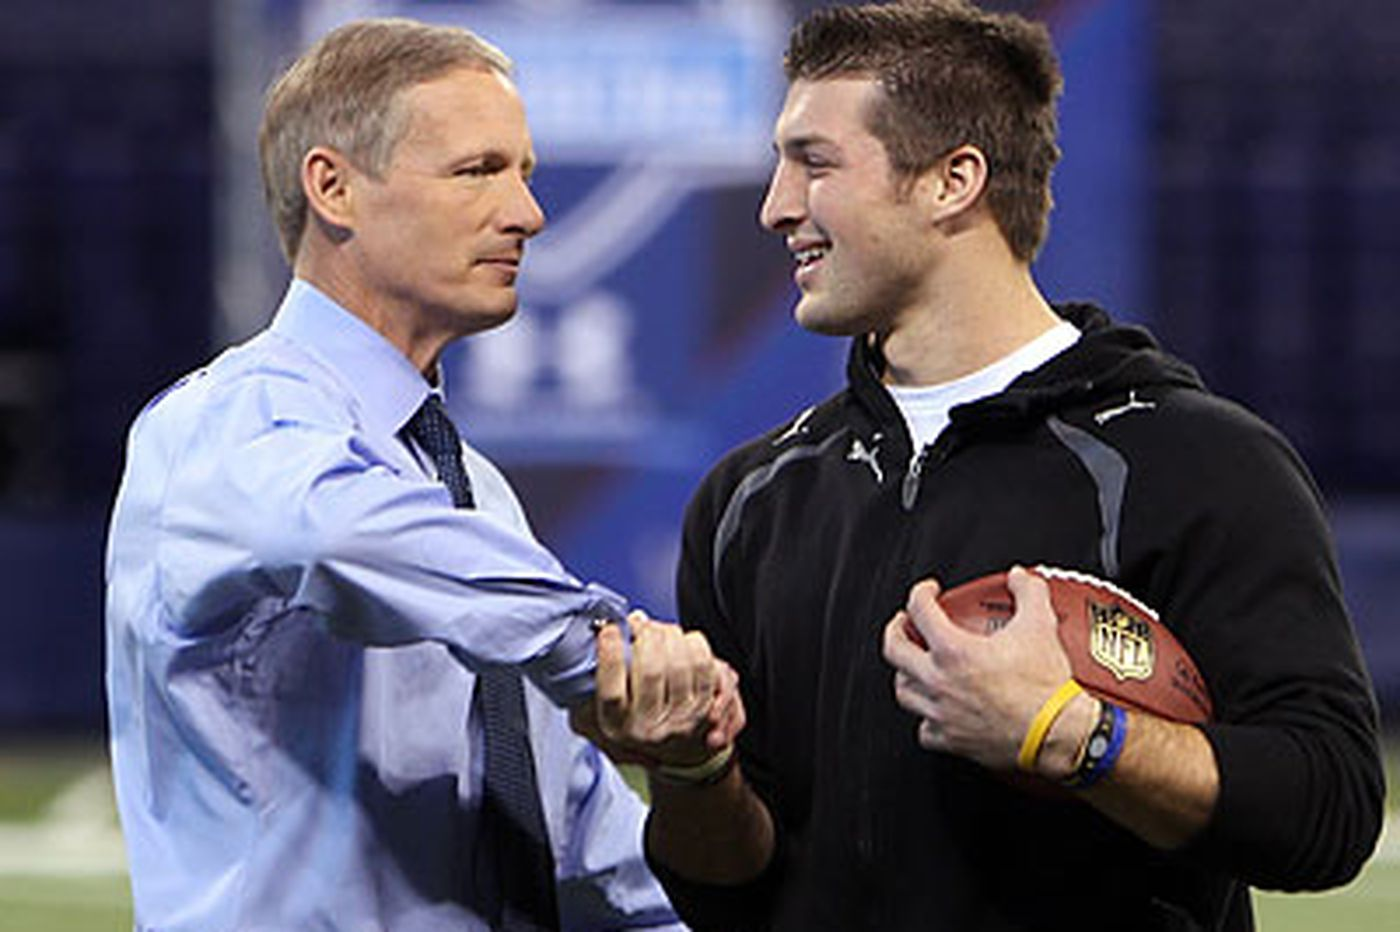 NFL analyst Mayock has paid his dues